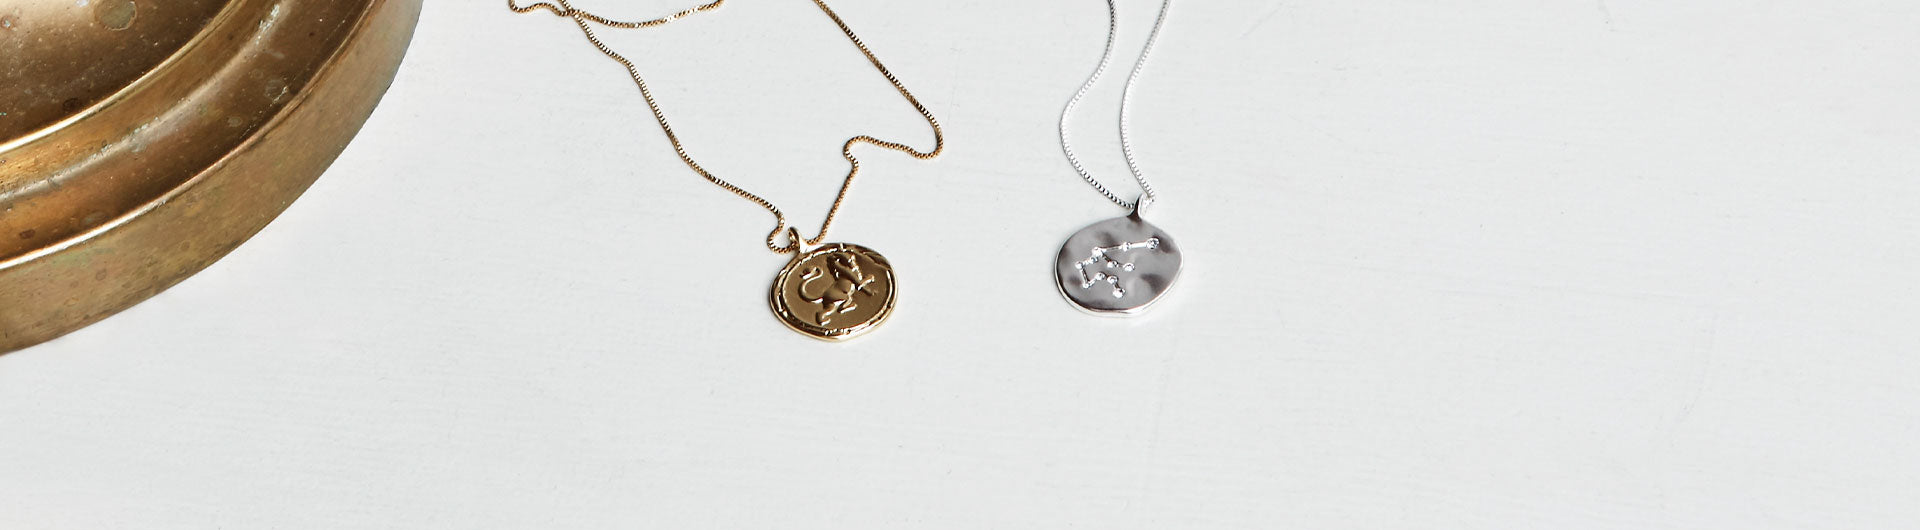 Dive deep into the world of astrology with meaningful jewellery. Astrology is looked at through the stars, the sun, and the moon to explain aspects of both personality and the future it holds.